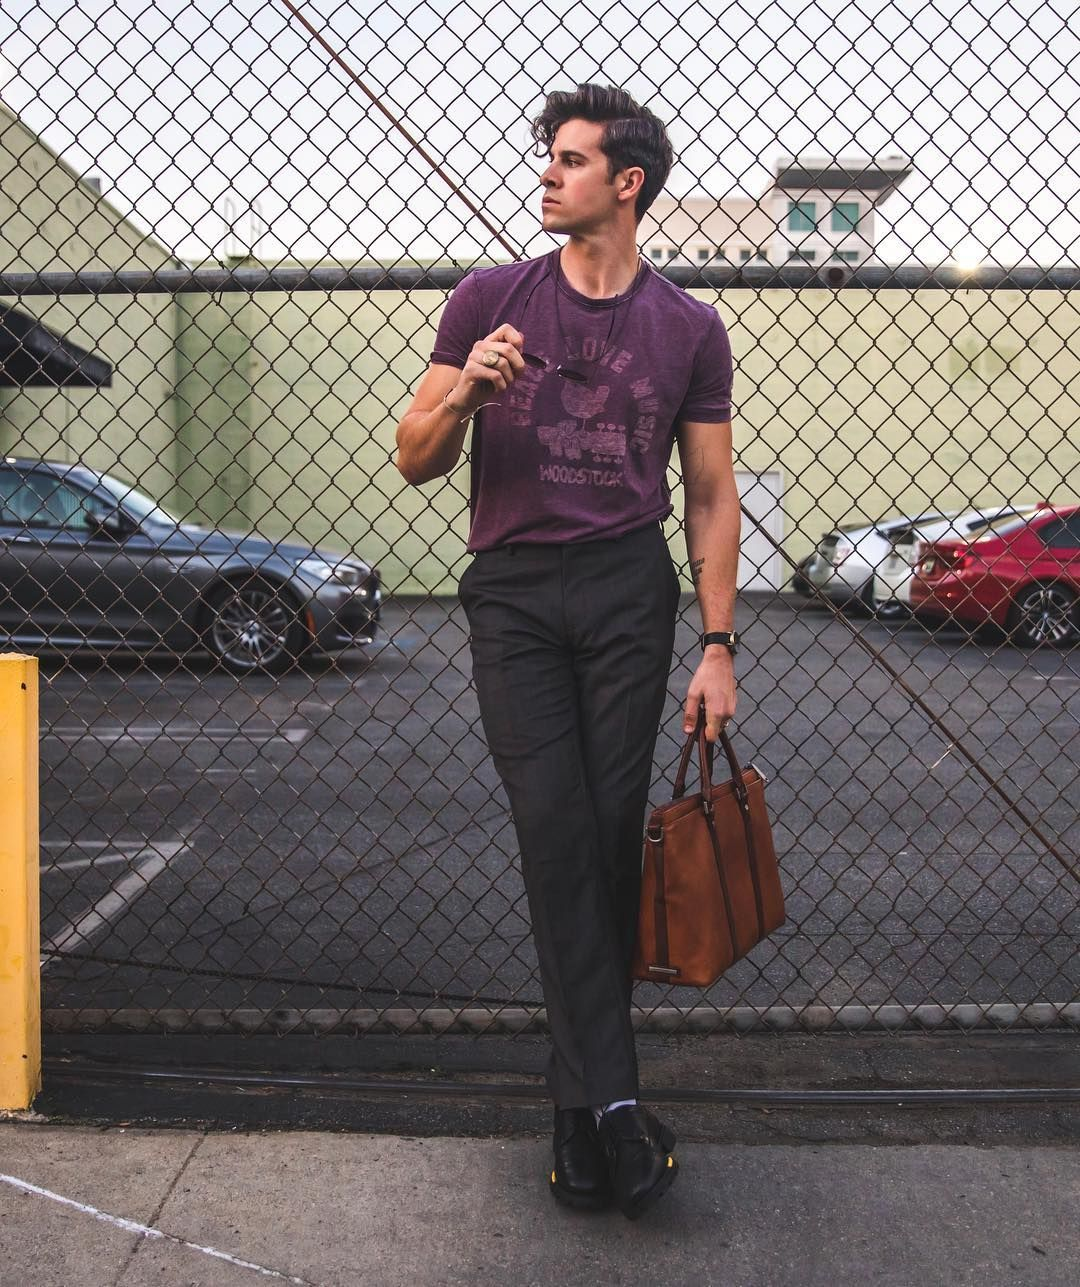 Styling Dress Pants Doesn T Have To Be Complicated Dudes A Graphic Tee And Some Dress Black Dress Pants Mens Fashion Fall Outfits Mens Fashion Summer Outfits [ 1287 x 1080 Pixel ]